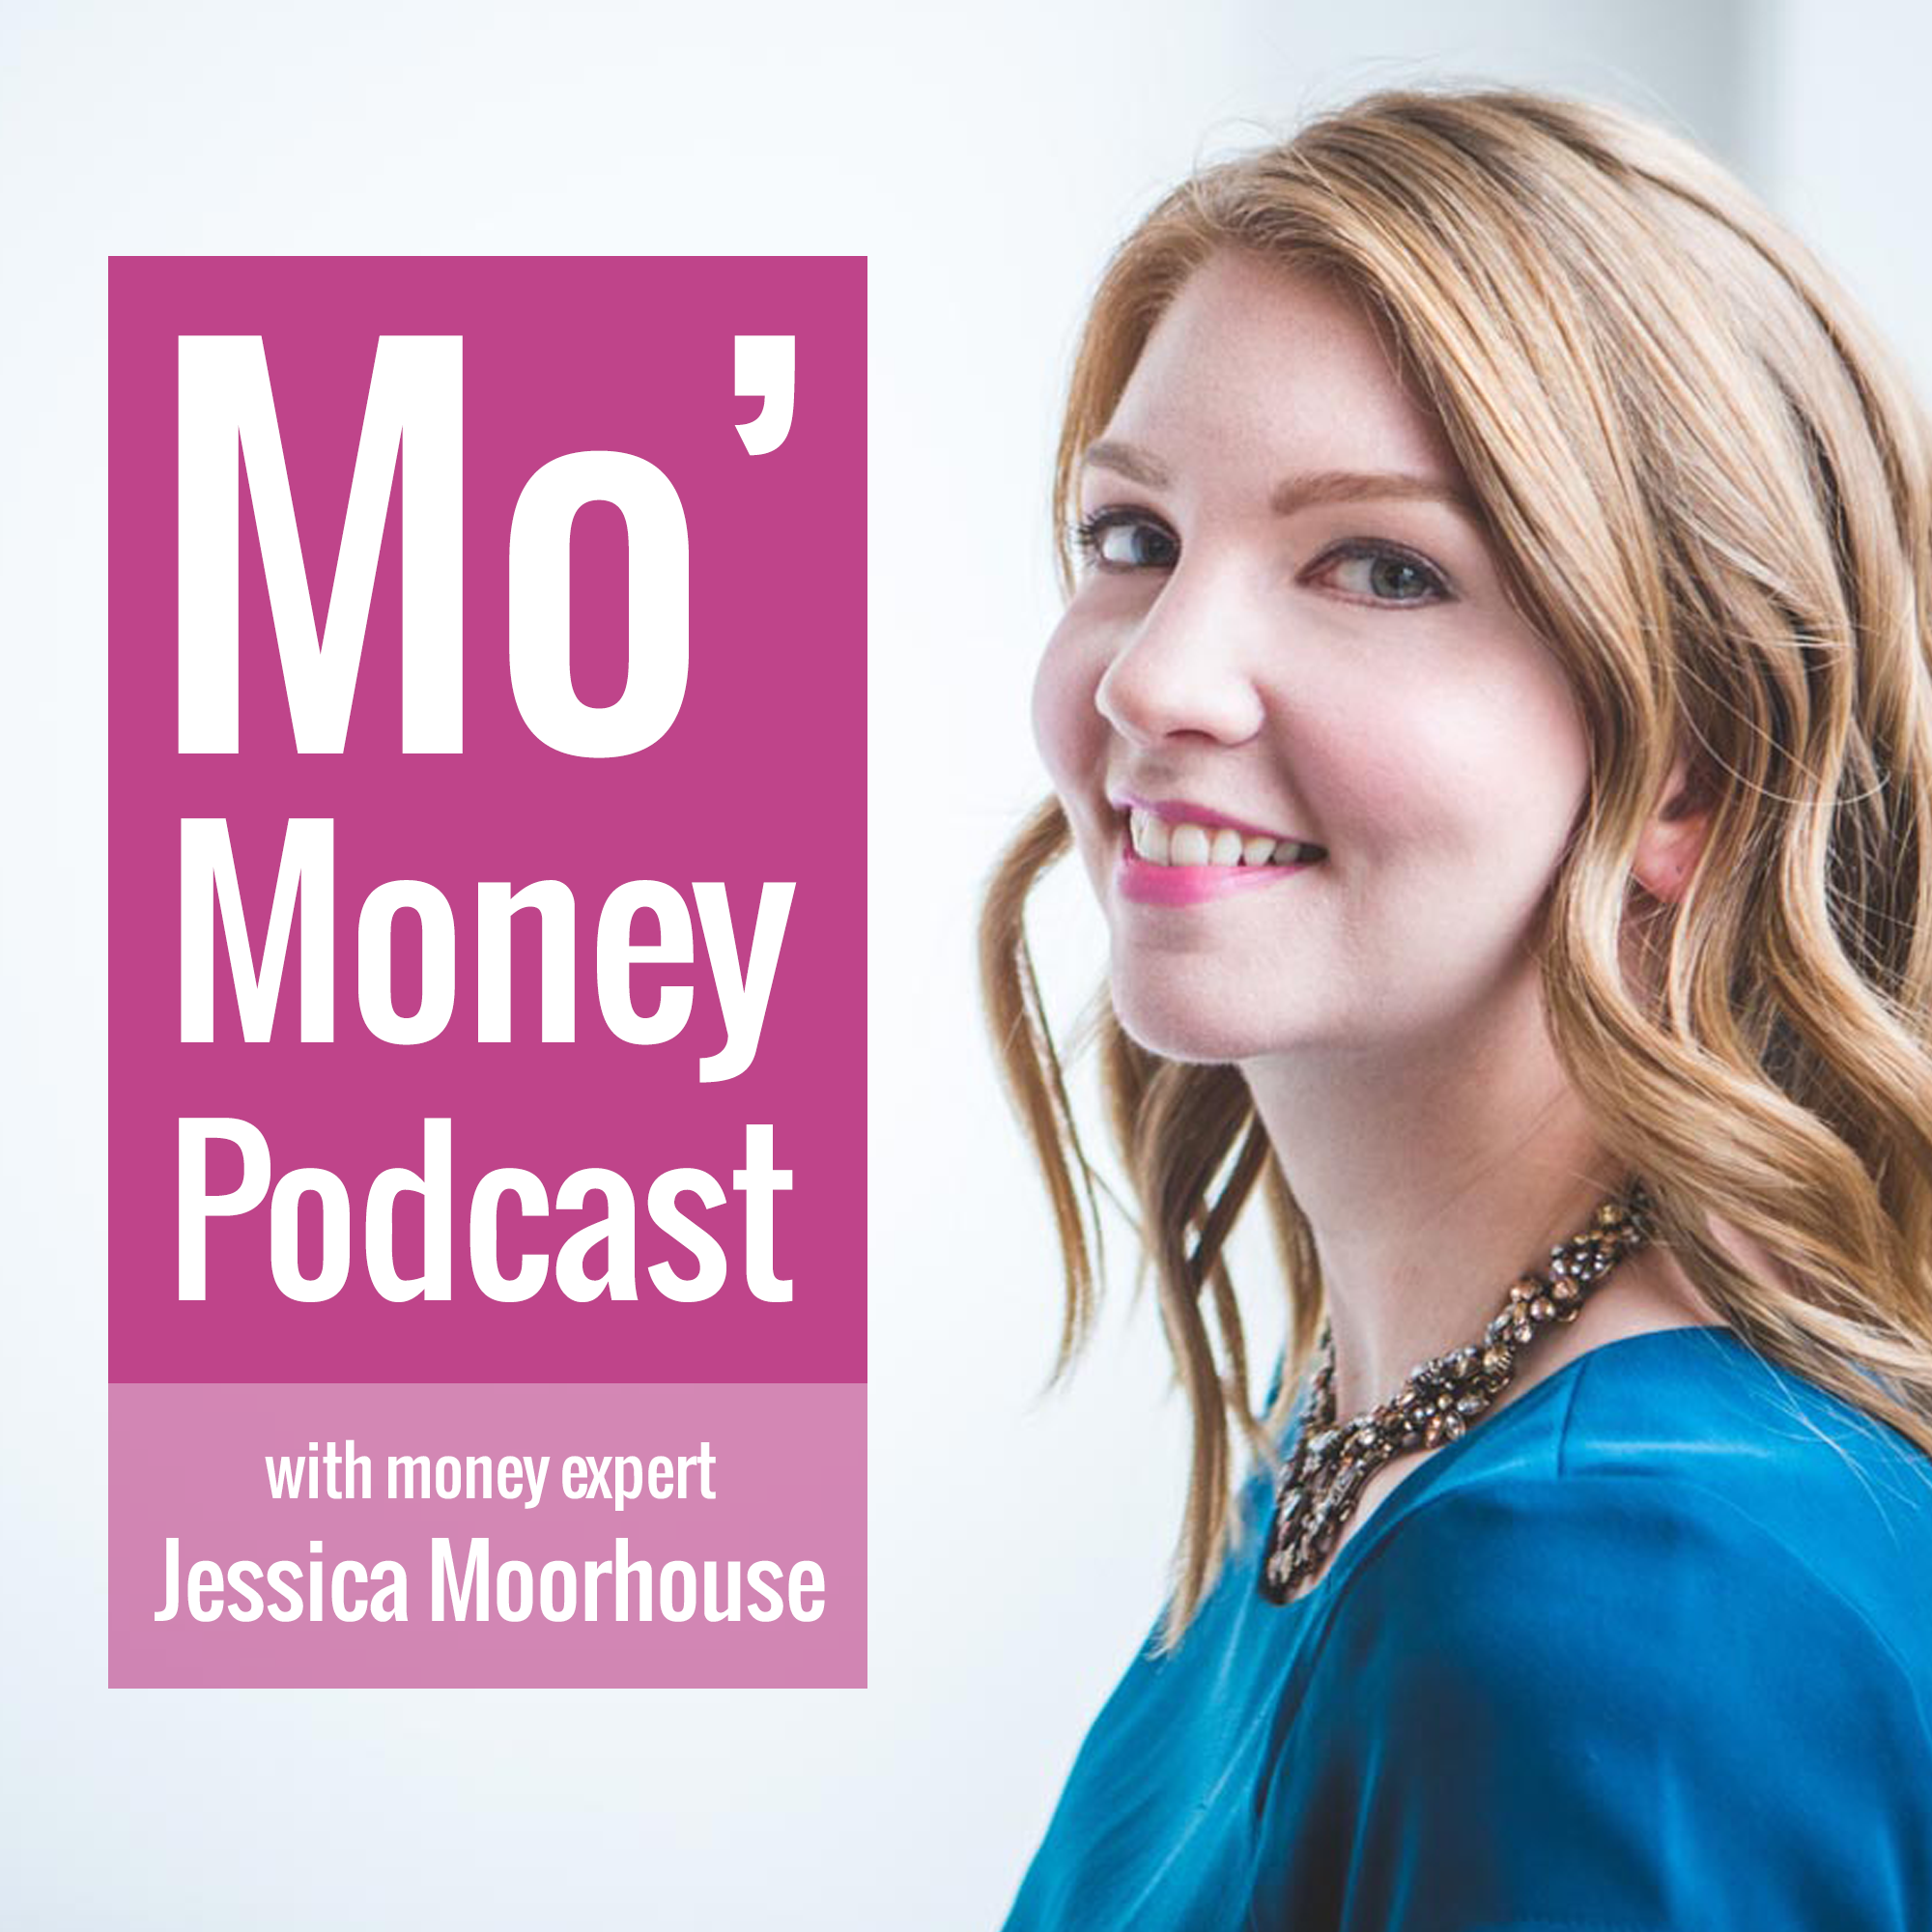 mo-money-podcast-jessica-moorhouse-coverart.png